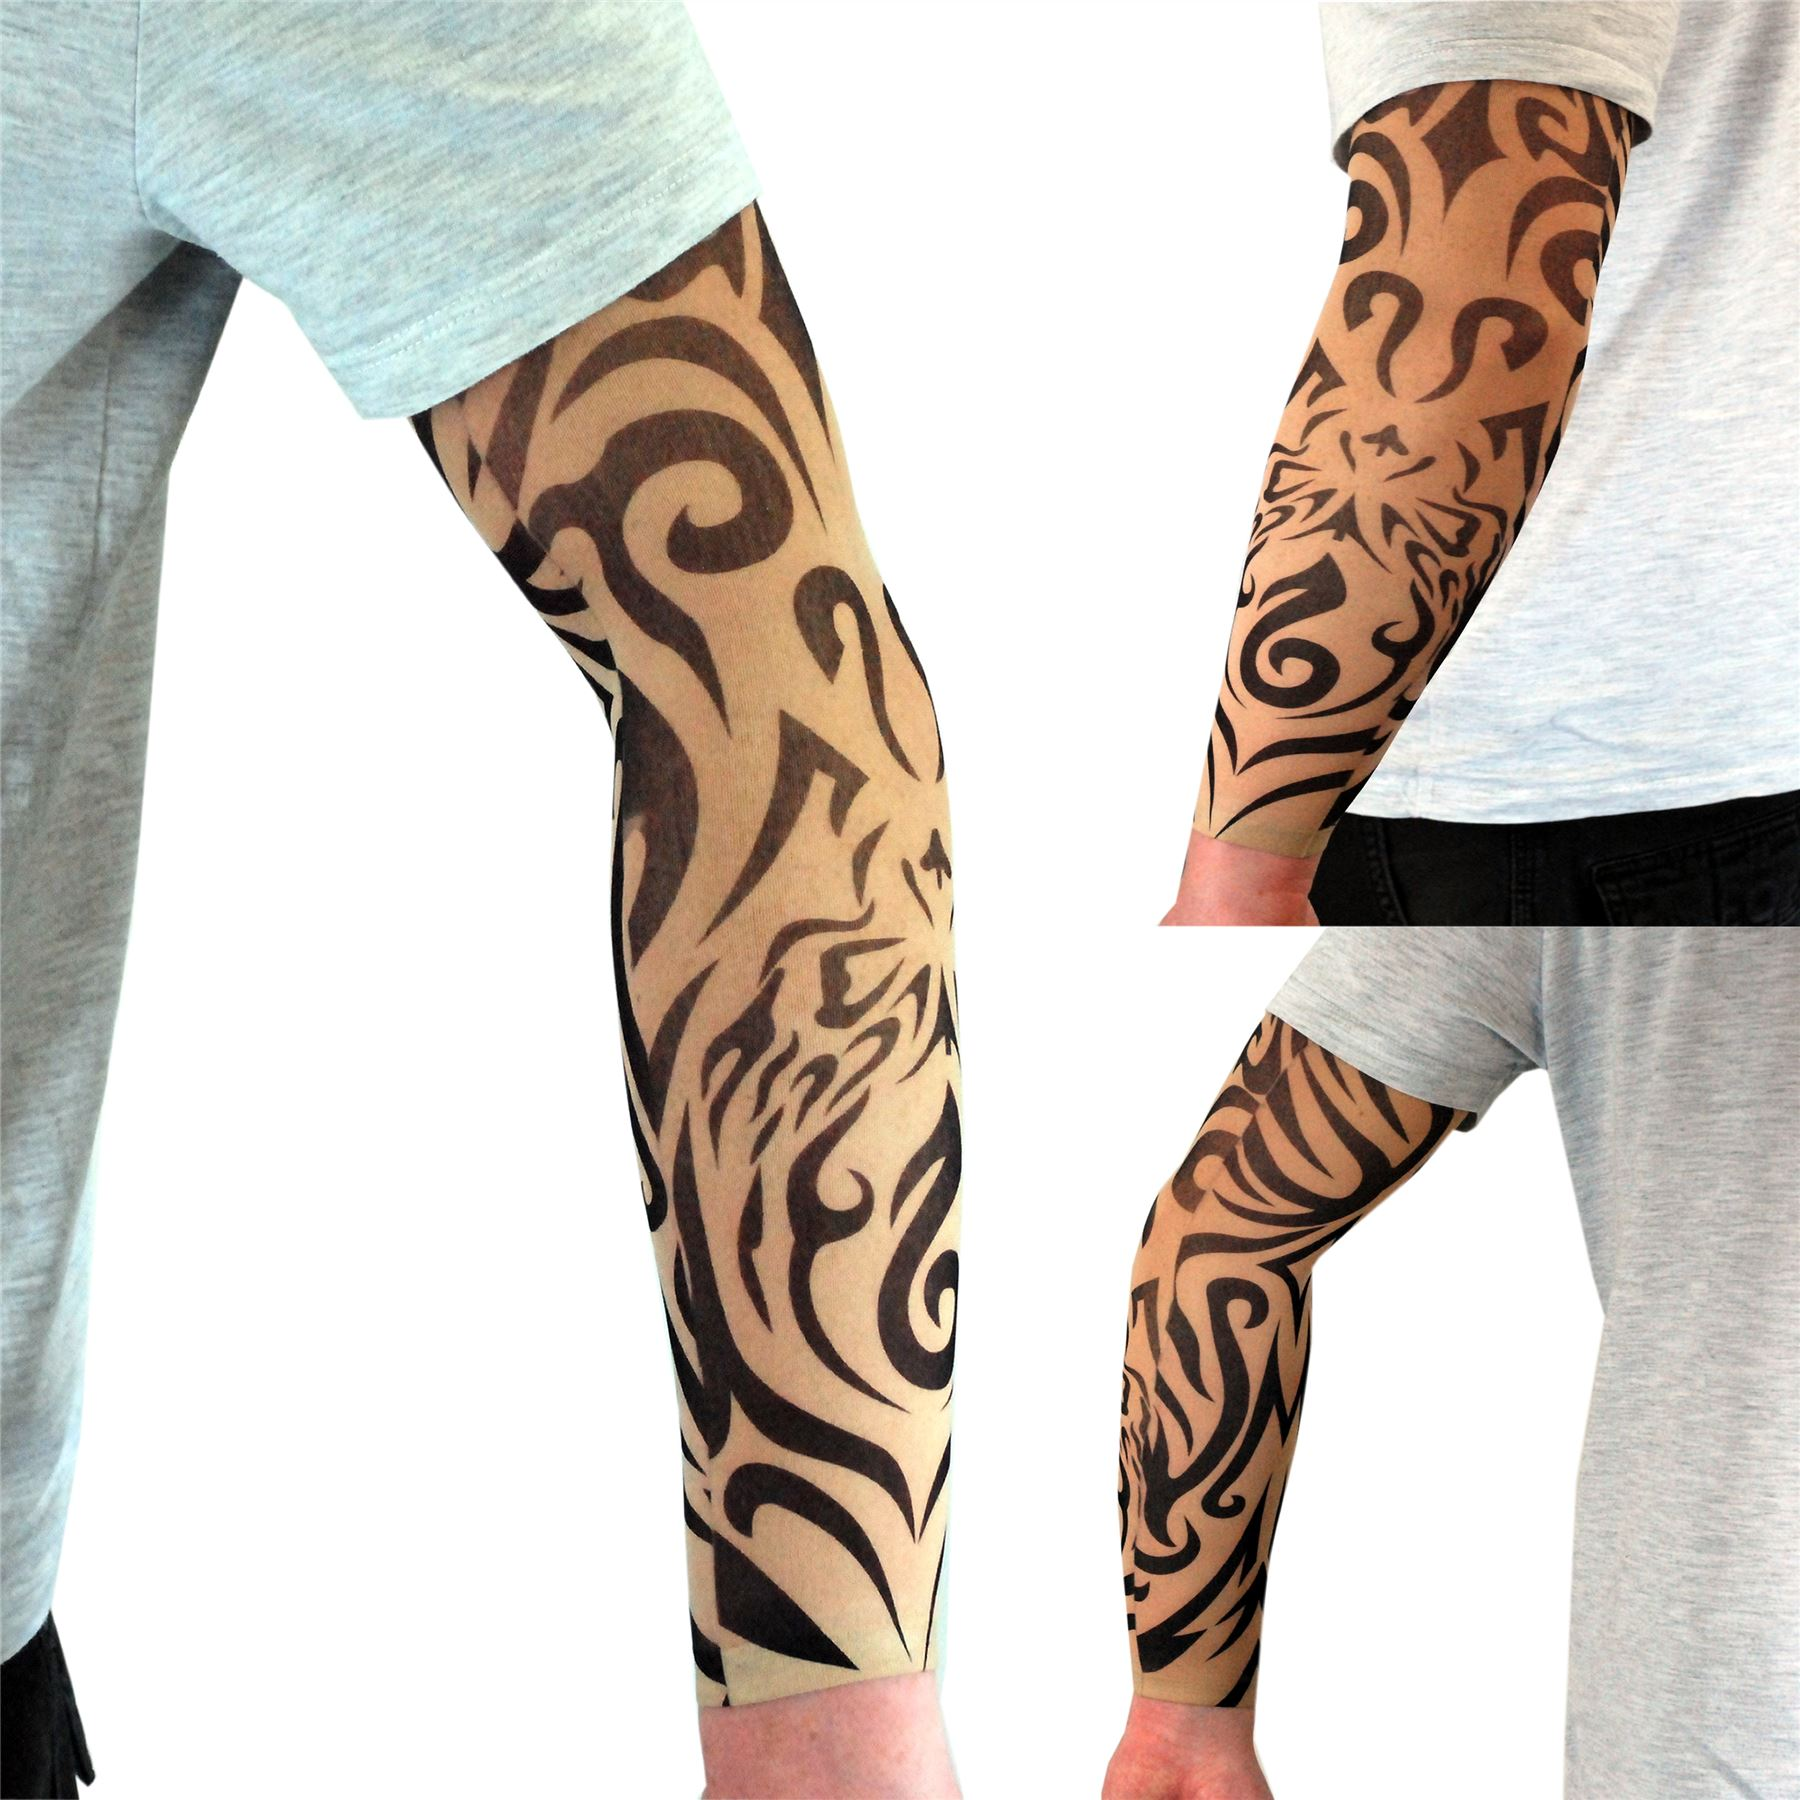 nylon stretch fake tattoo sleeves arms fancy dress party uk 11 vibrant designs ebay. Black Bedroom Furniture Sets. Home Design Ideas